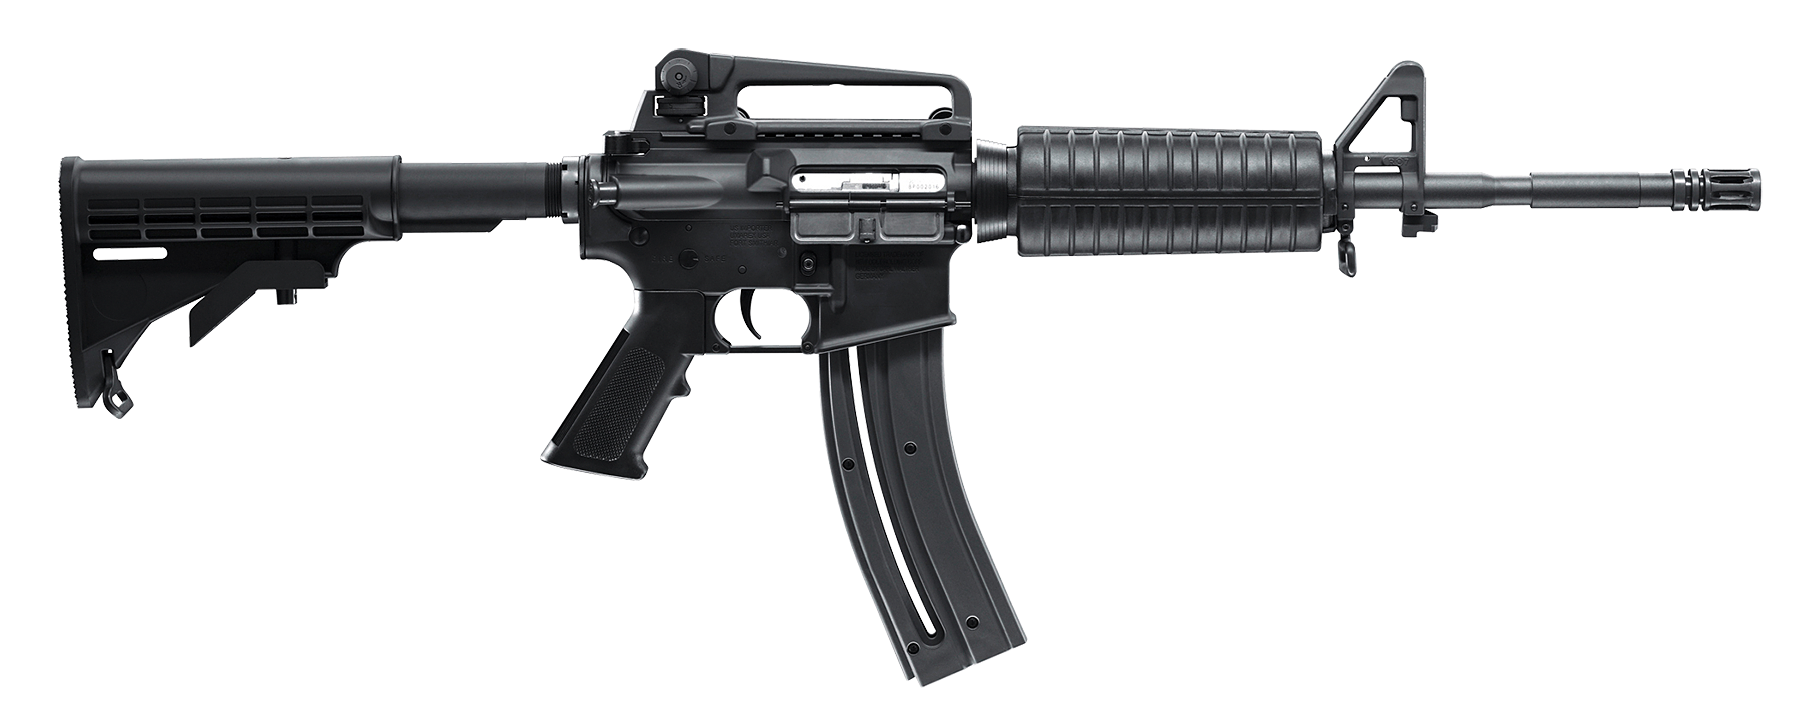 Colt Rimfire 5760300 M4 Carbine AR-15 SA 22 Long Rifle 16.2